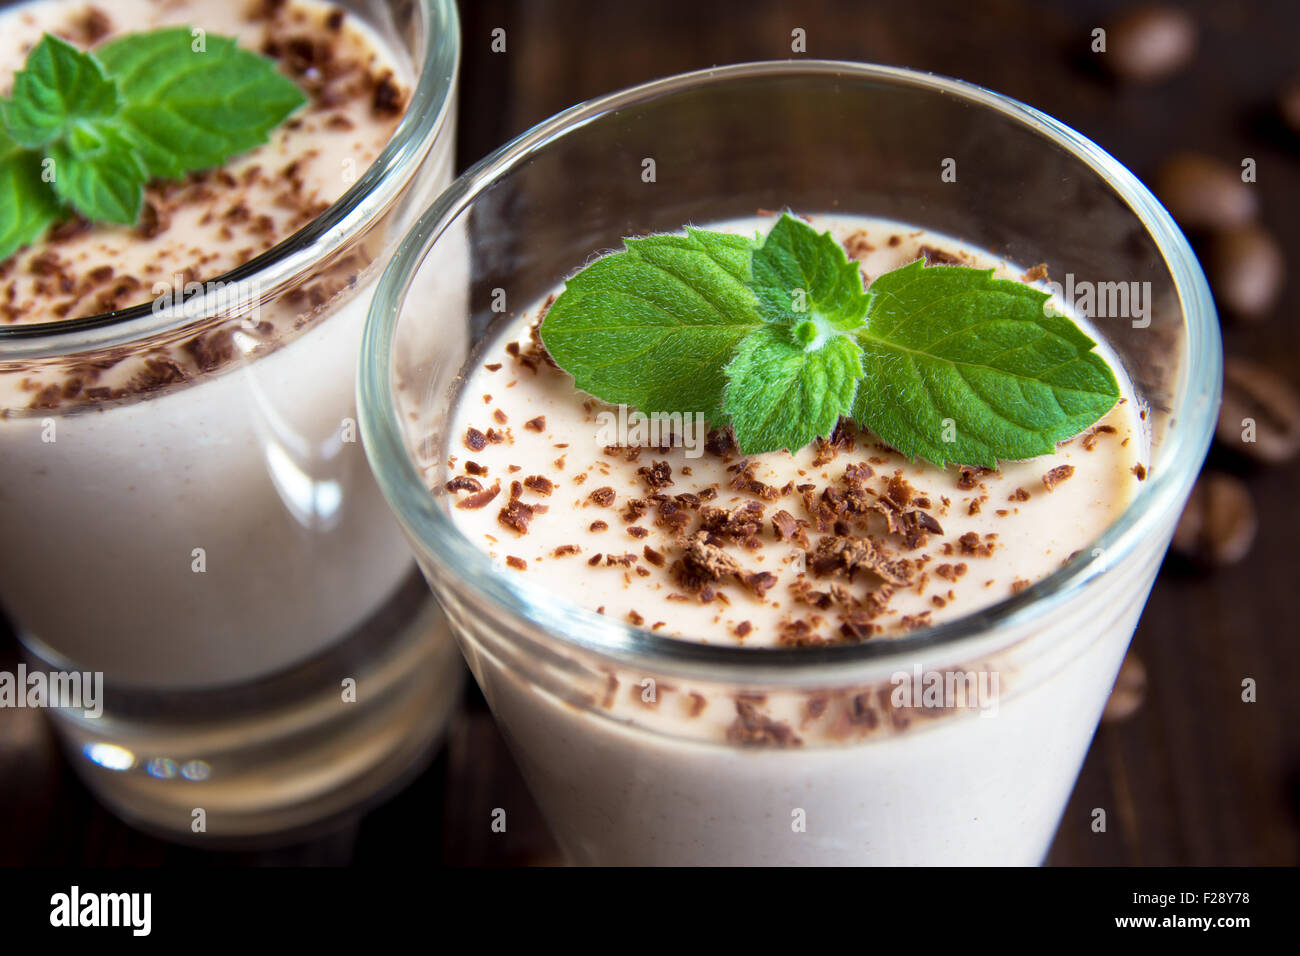 Chocolate Panna Cotta dessert with mint in portion glasses close up - Stock Image